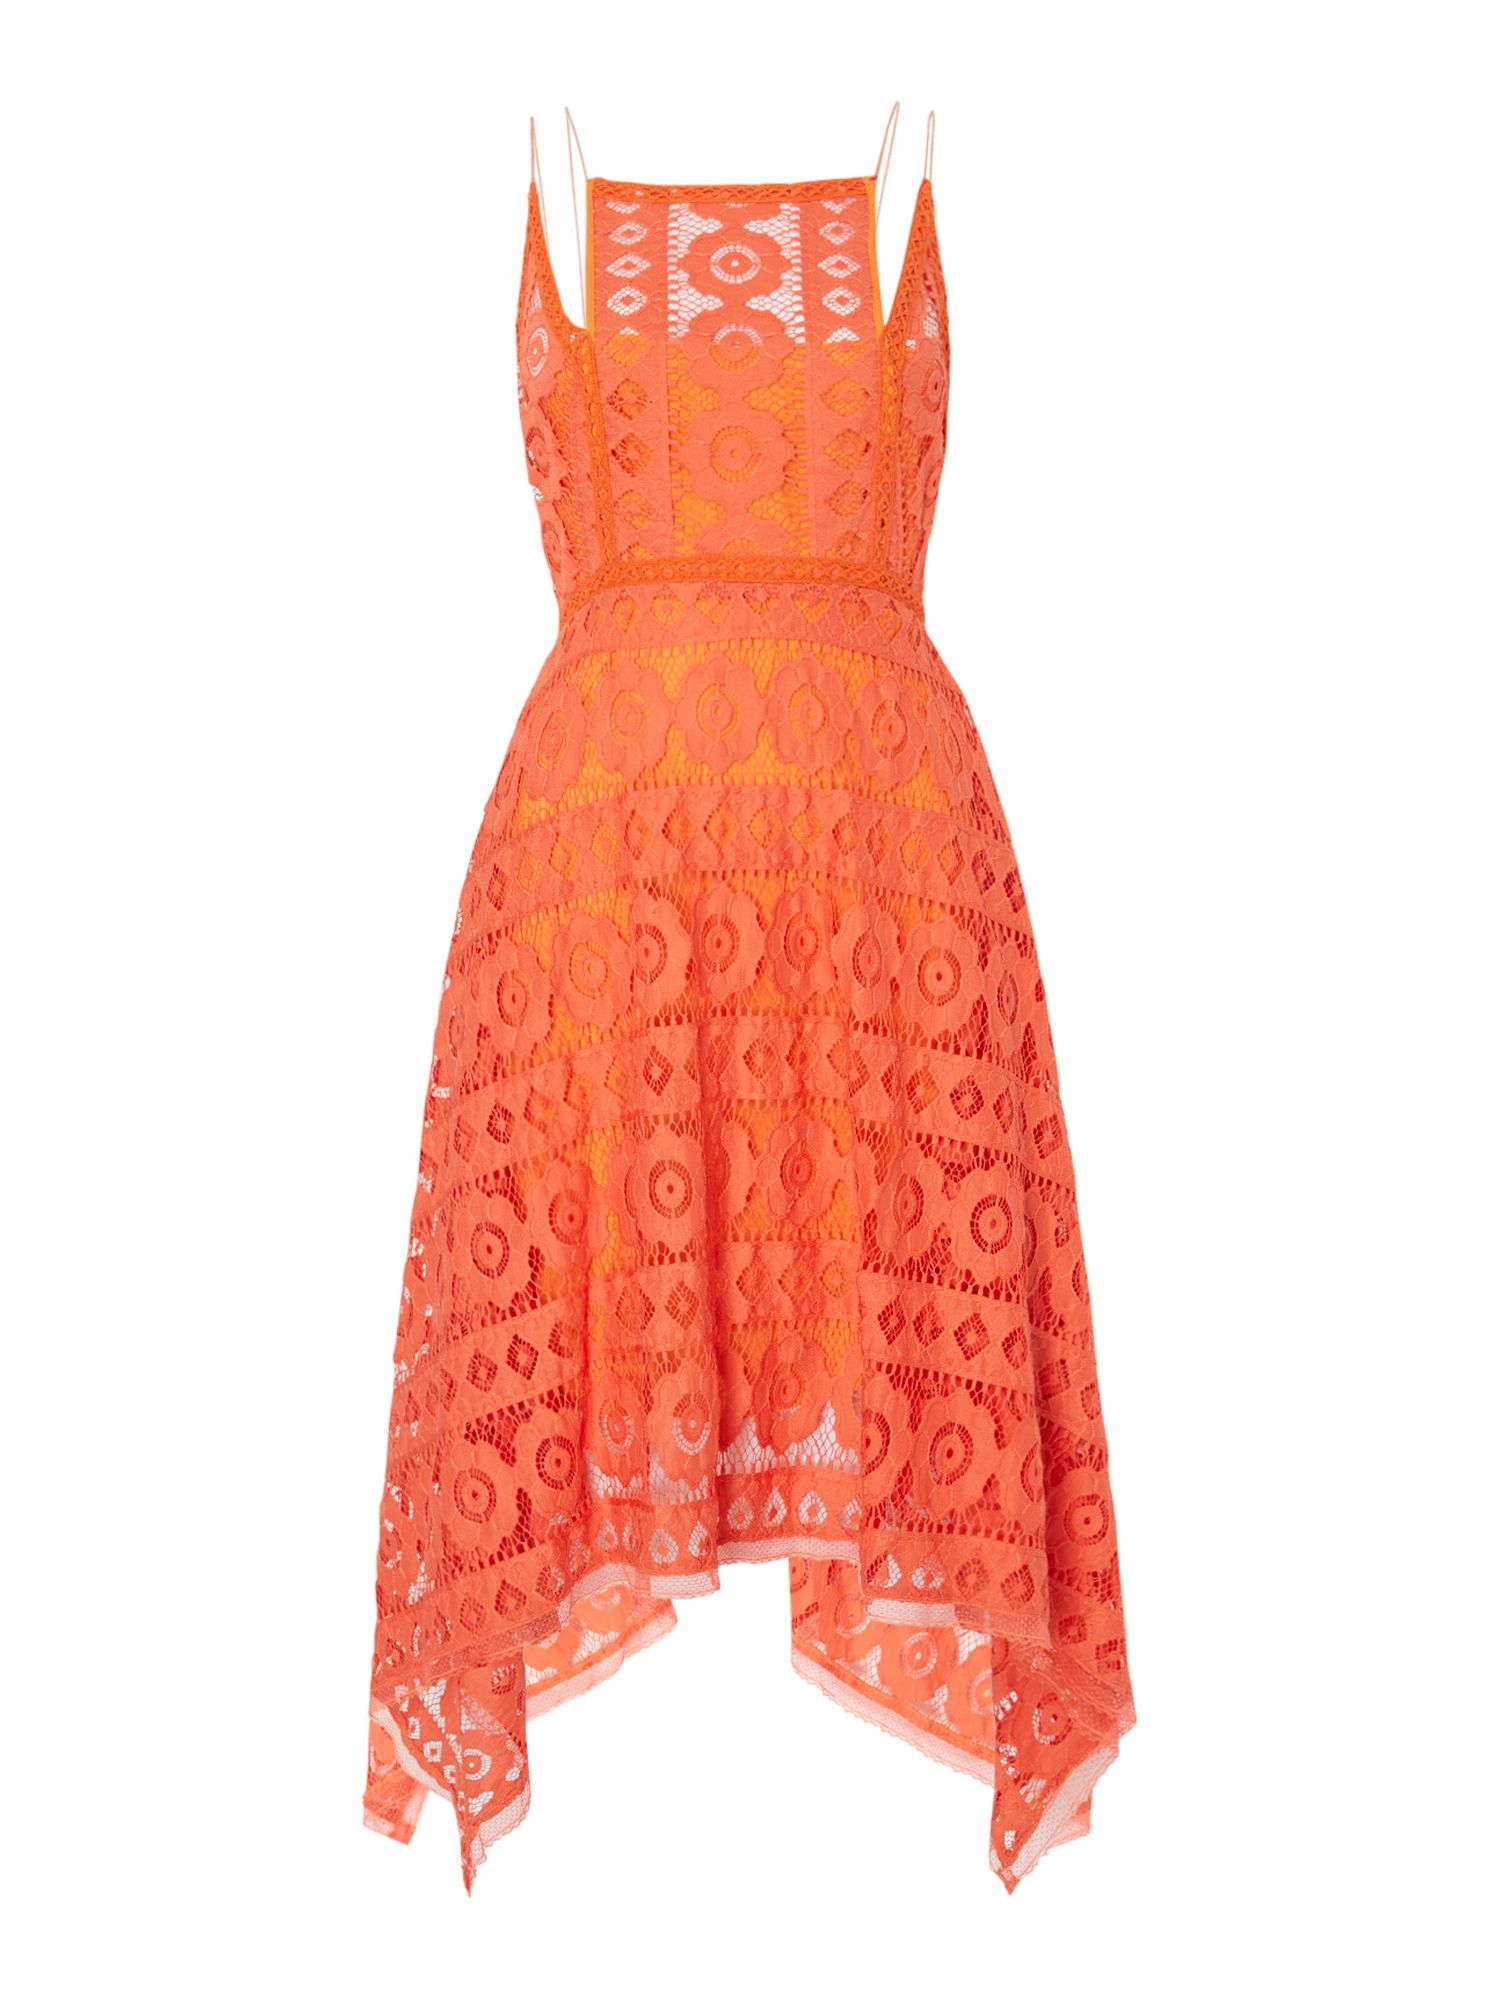 Free People Just Like Honey Lace Dress With Hankerchief Hem, Orange